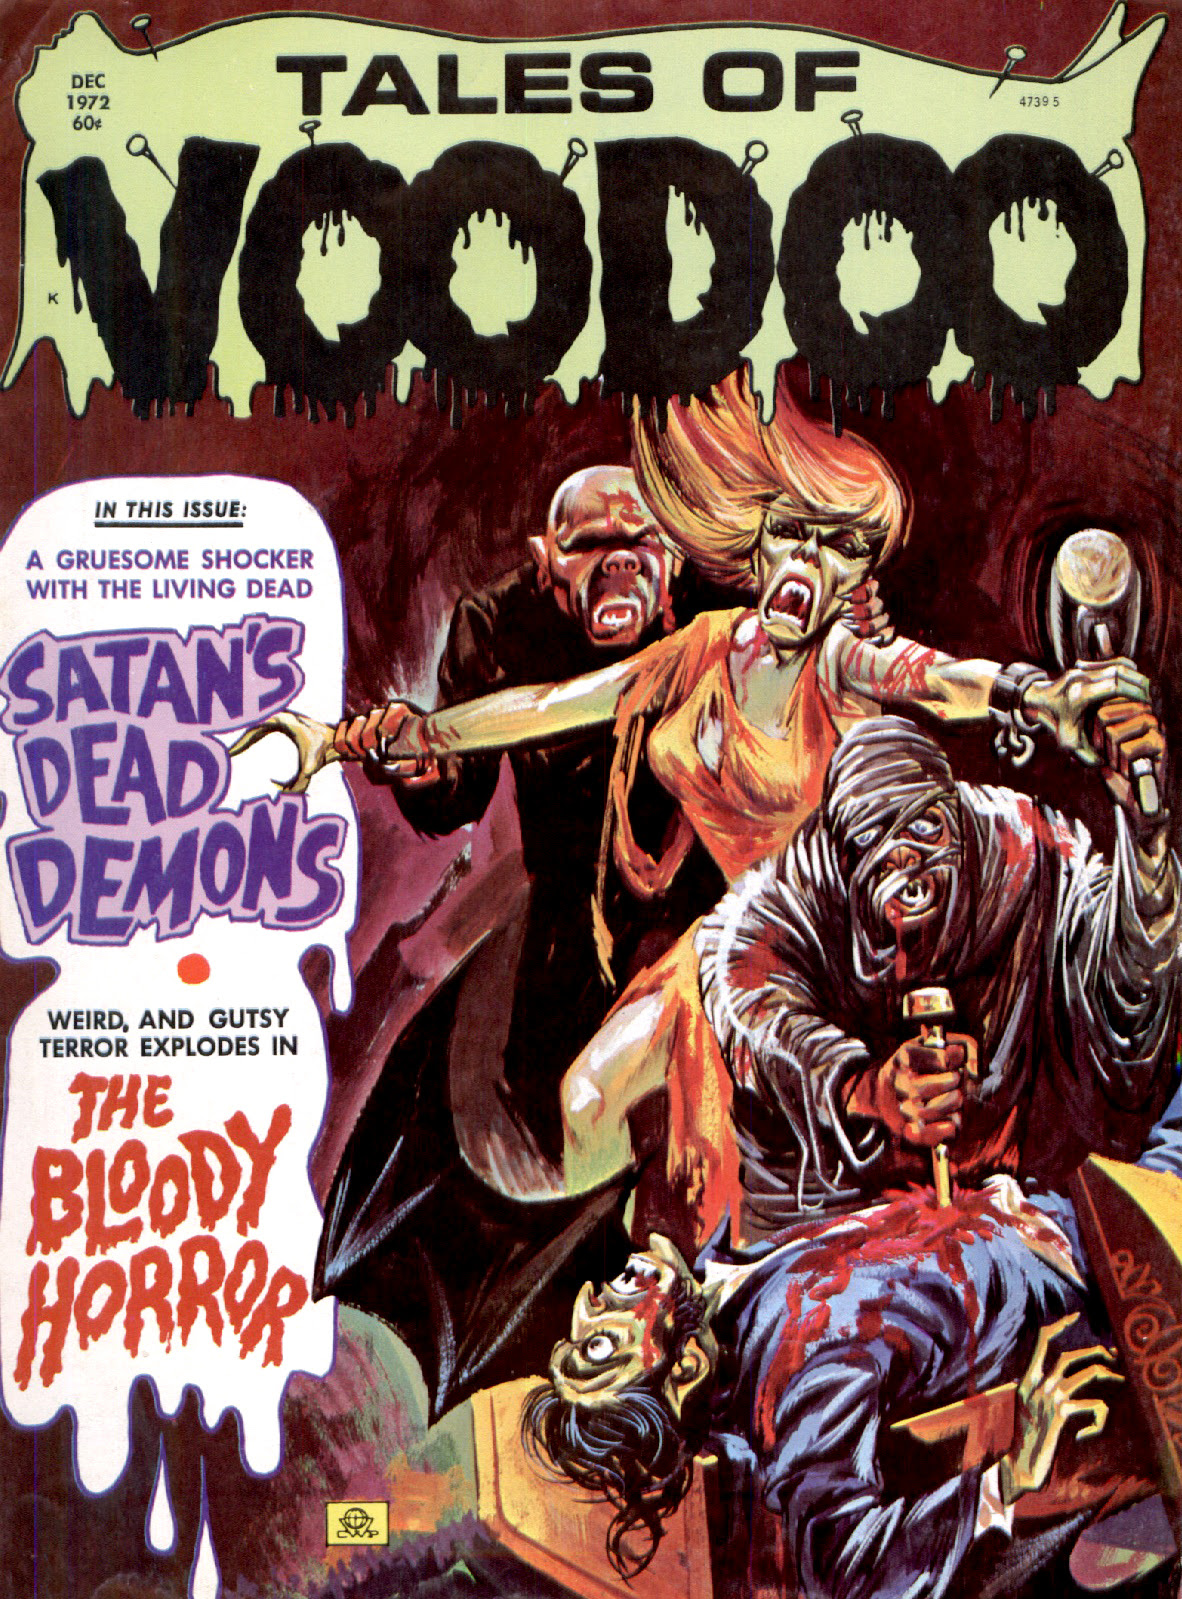 Tales of Voodoo Vol. 5 #7 (Eerie Publications 1972)